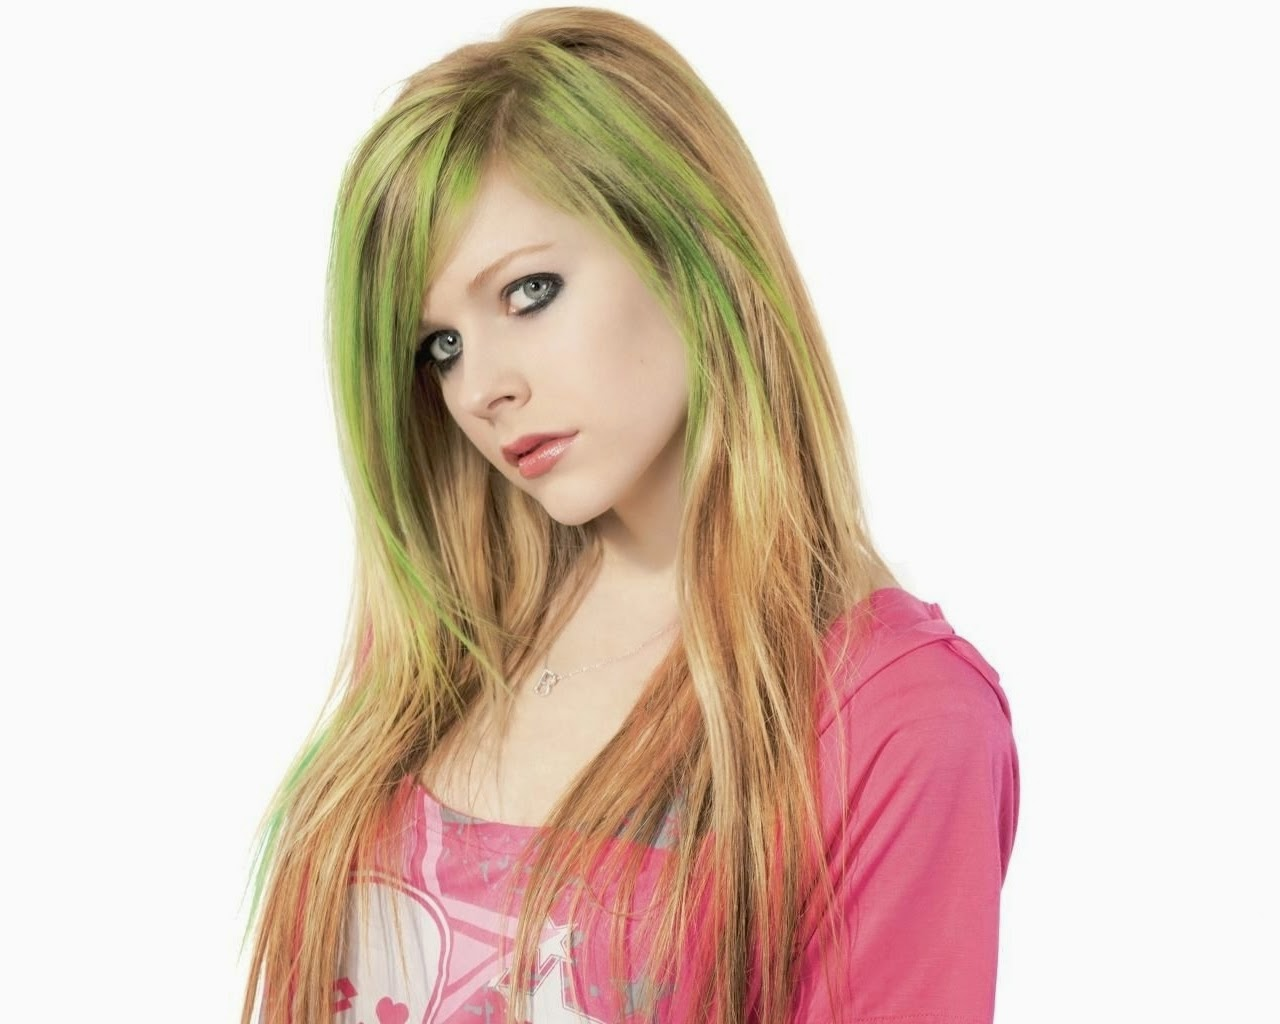 avril lavigne hairstyles avril lavigne hairstyles over the years avril title=